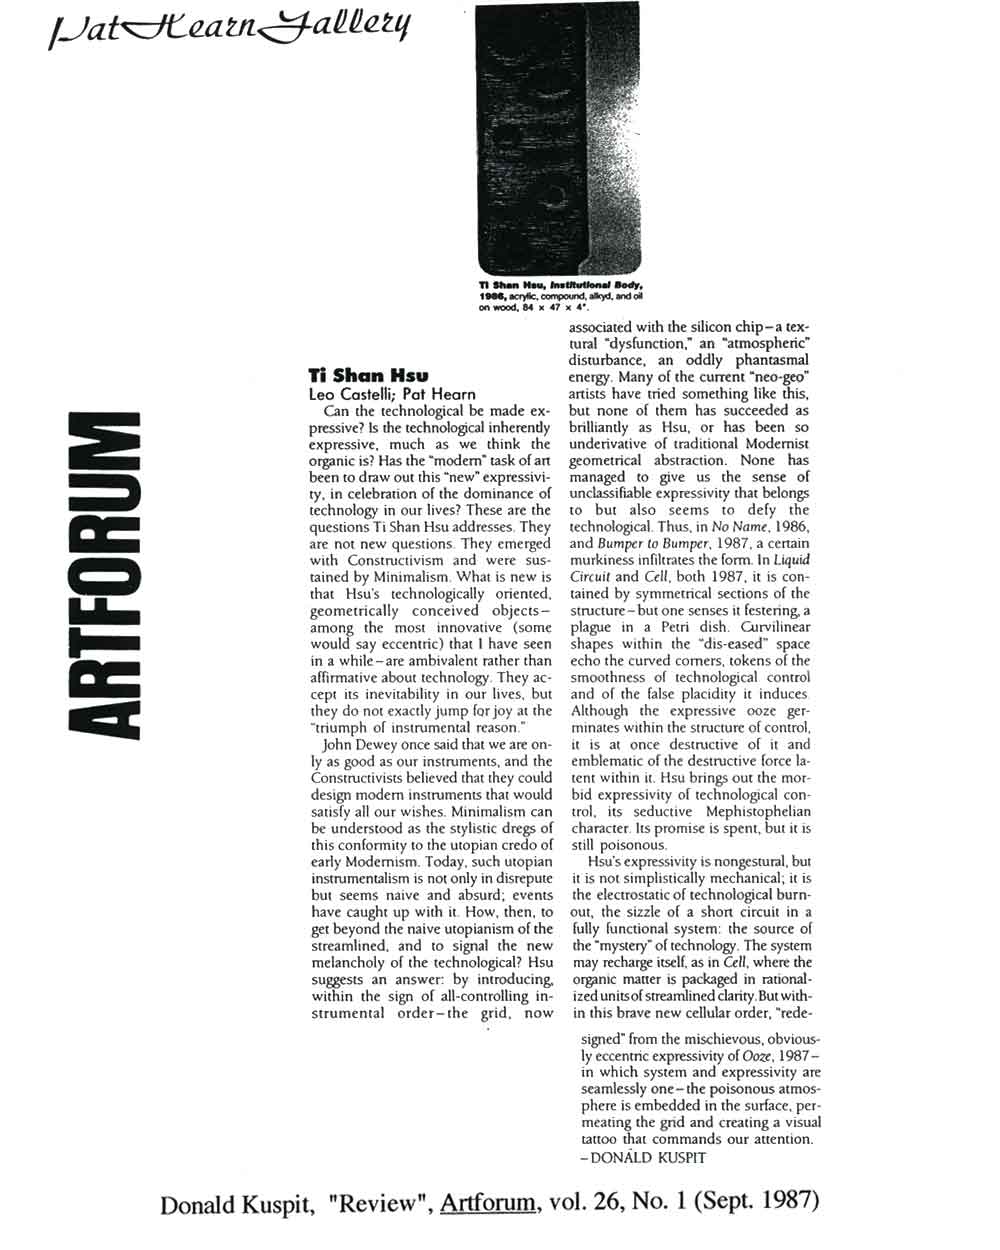 Tishan Hsu, article in Artforum